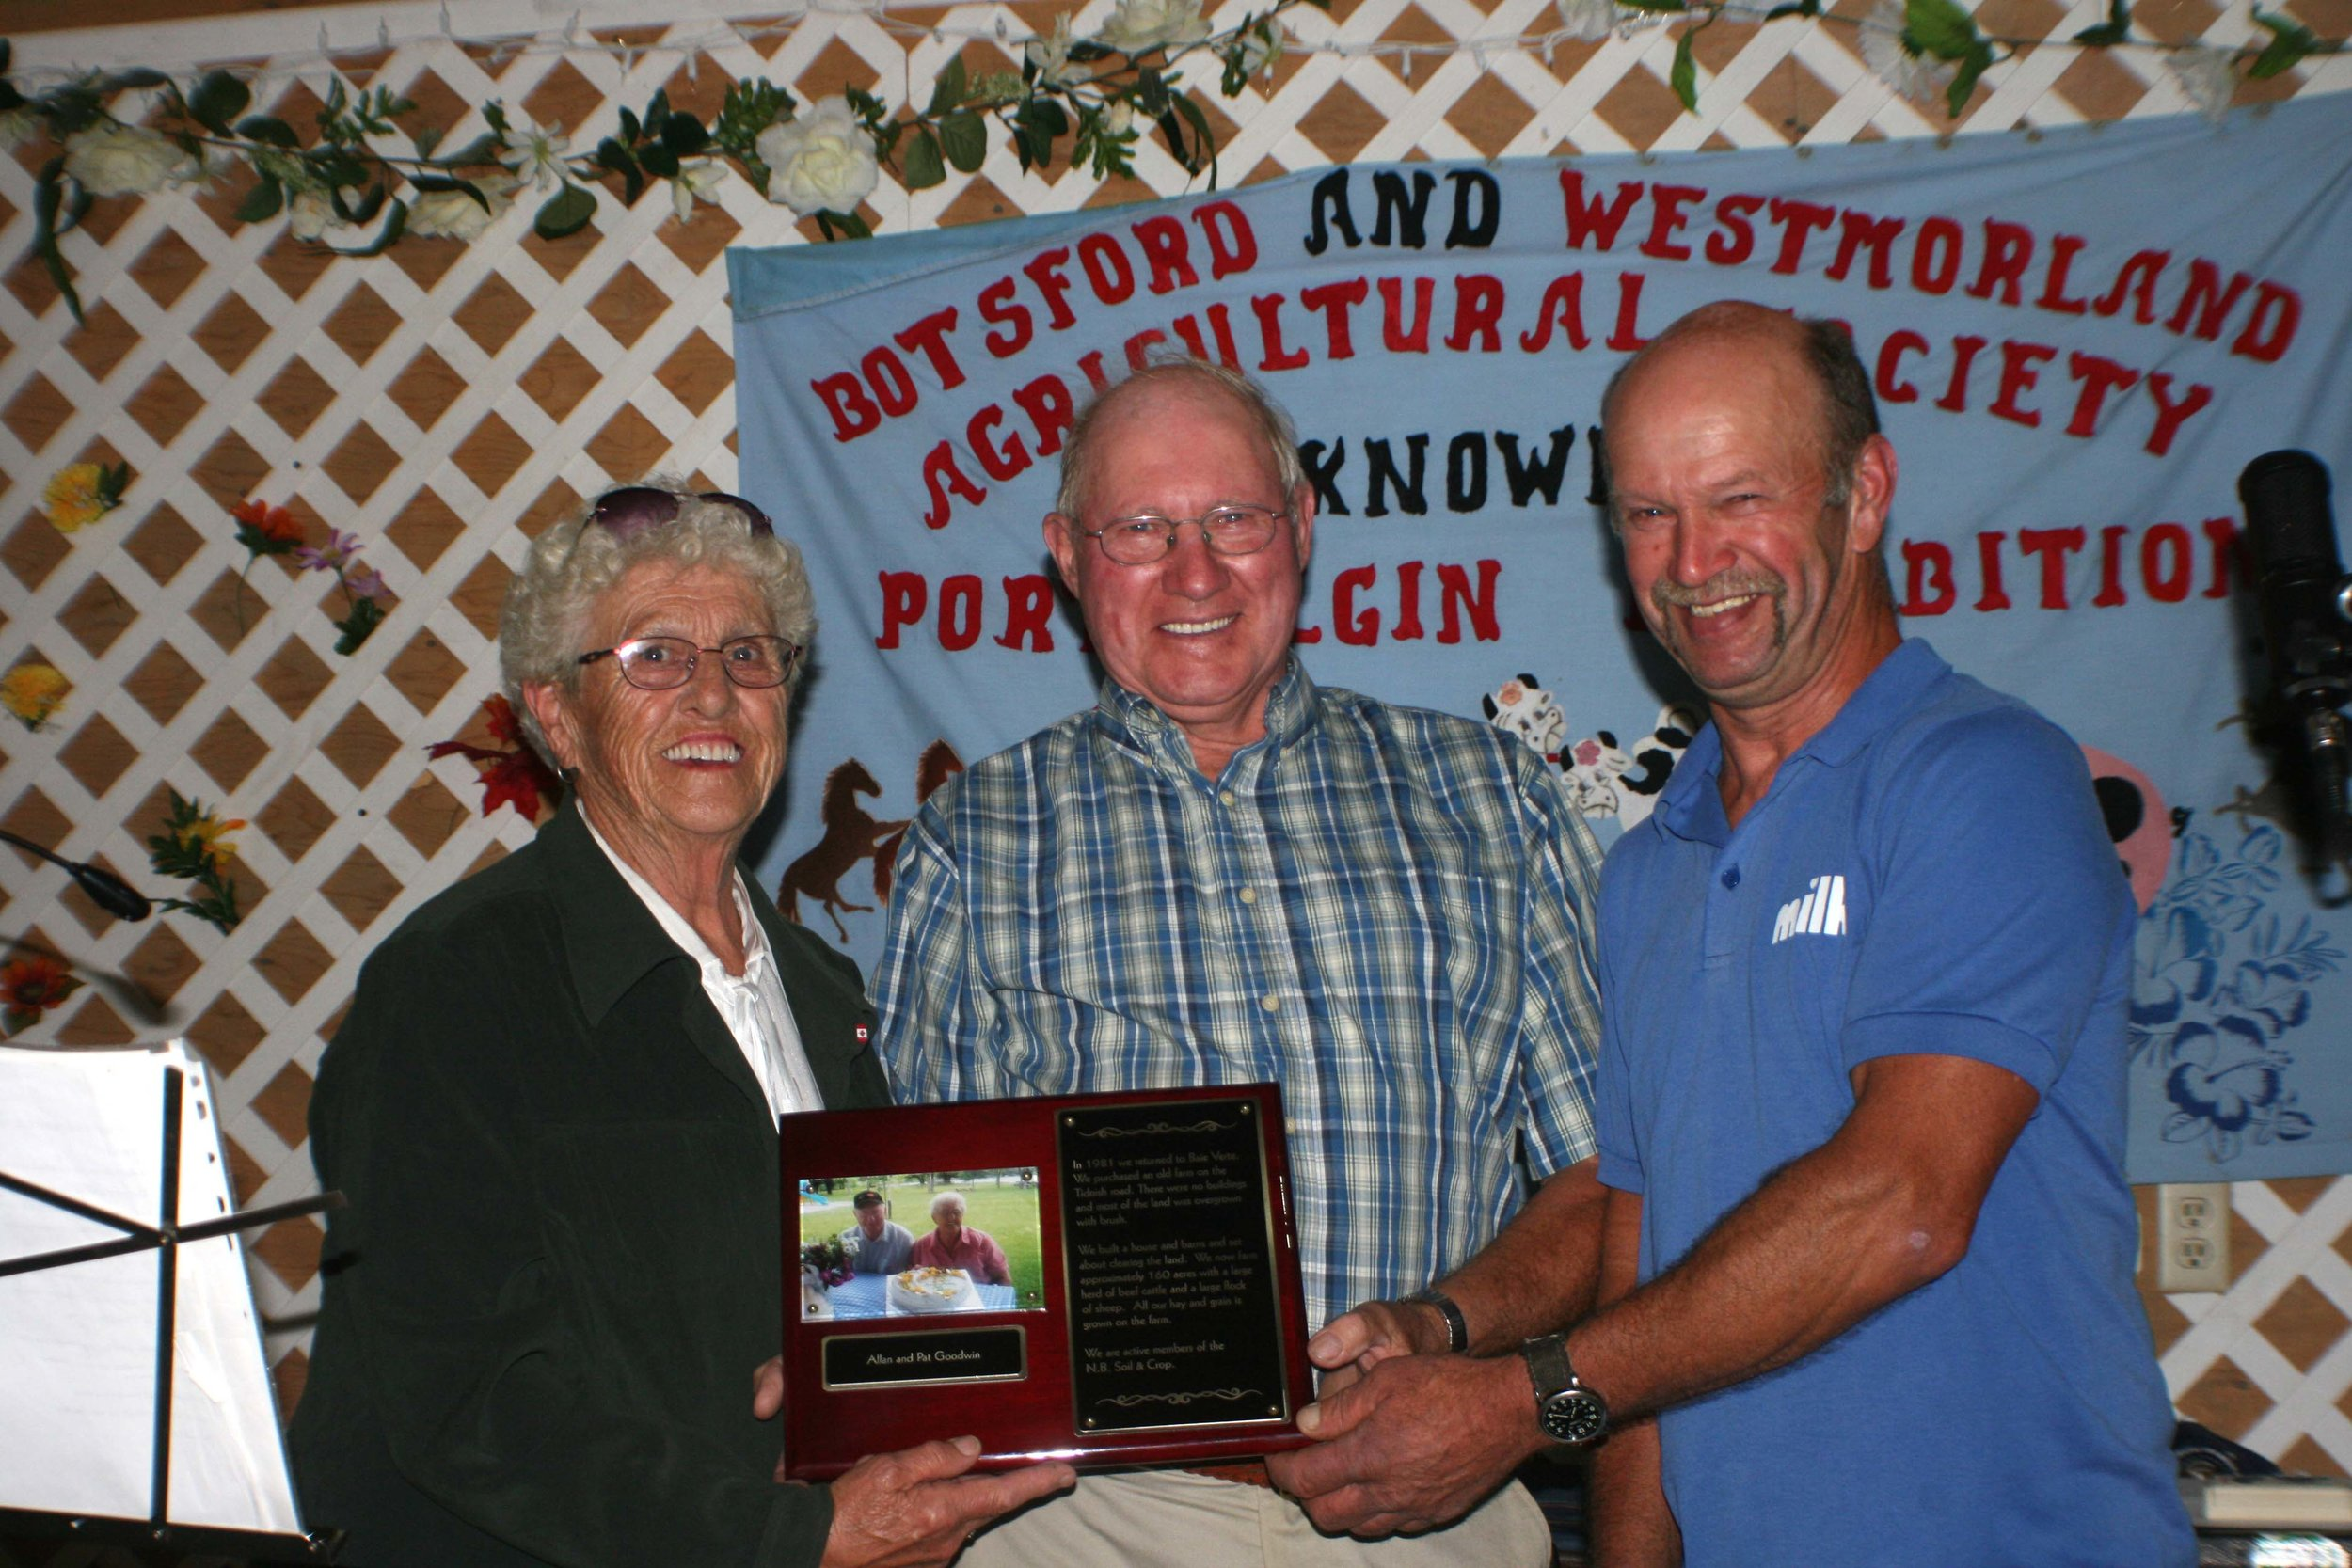 Allan and Patricia Goodwin of Baie Verte, N.B., were named farmers of the year during the 24th Port Elgin Exhibition, which was held Aug. 18-21. From left, Patricia and Allan Goodwin, and Con Rommens, a director of the Botsford and Westmorland Agricultural Society, which sponsors the exhibition. (Joan LeBlanc photo)